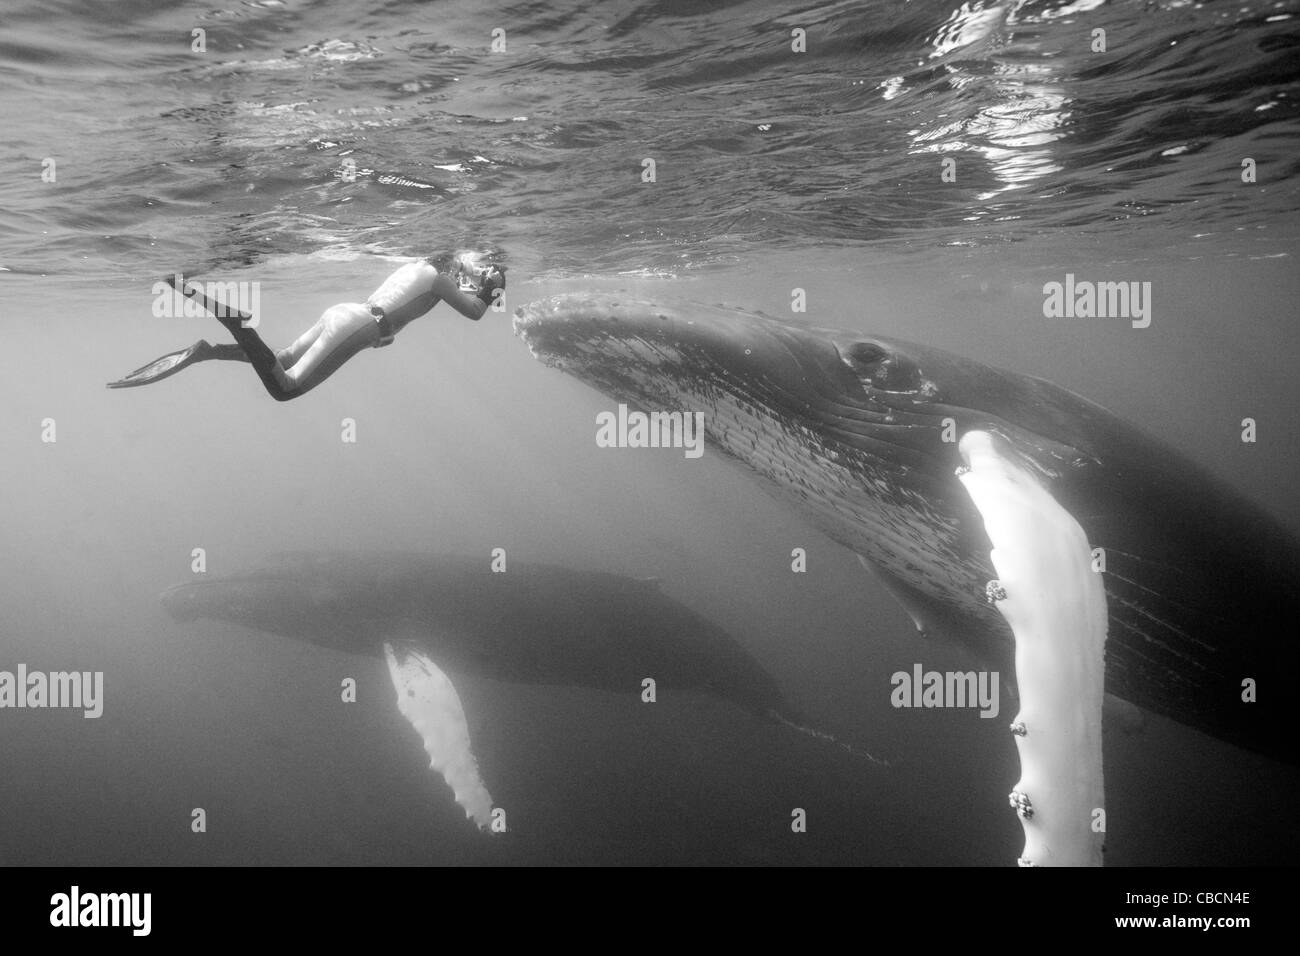 Humpback Whale and Photographer, Megaptera novaeangliae, Silver Bank, Atlantic Ocean, Dominican Republic - Stock Image